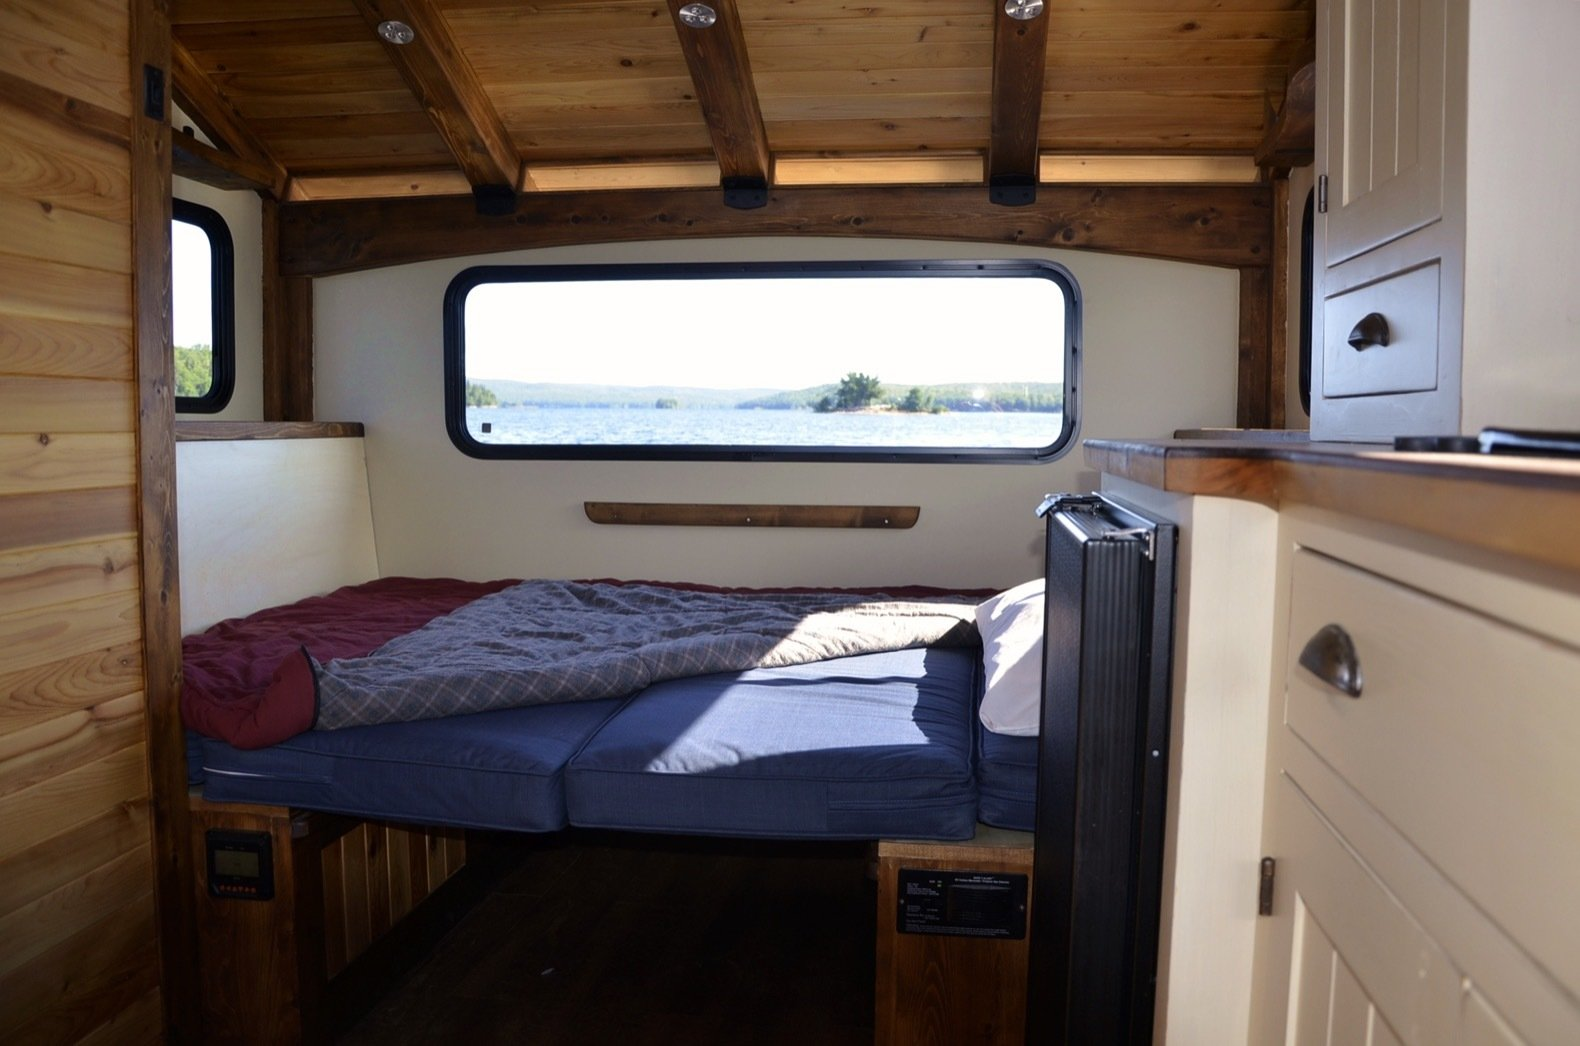 Bedroom, Bed, Recessed Lighting, Medium Hardwood Floor, and Storage The dinette transforms into a sleeping area once the table is lowered and the cushions are folded out. The benches include hidden storage.  Photo 4 of 15 in Kick Back in This Tiny, Solar-Powered Houseboat For $61K